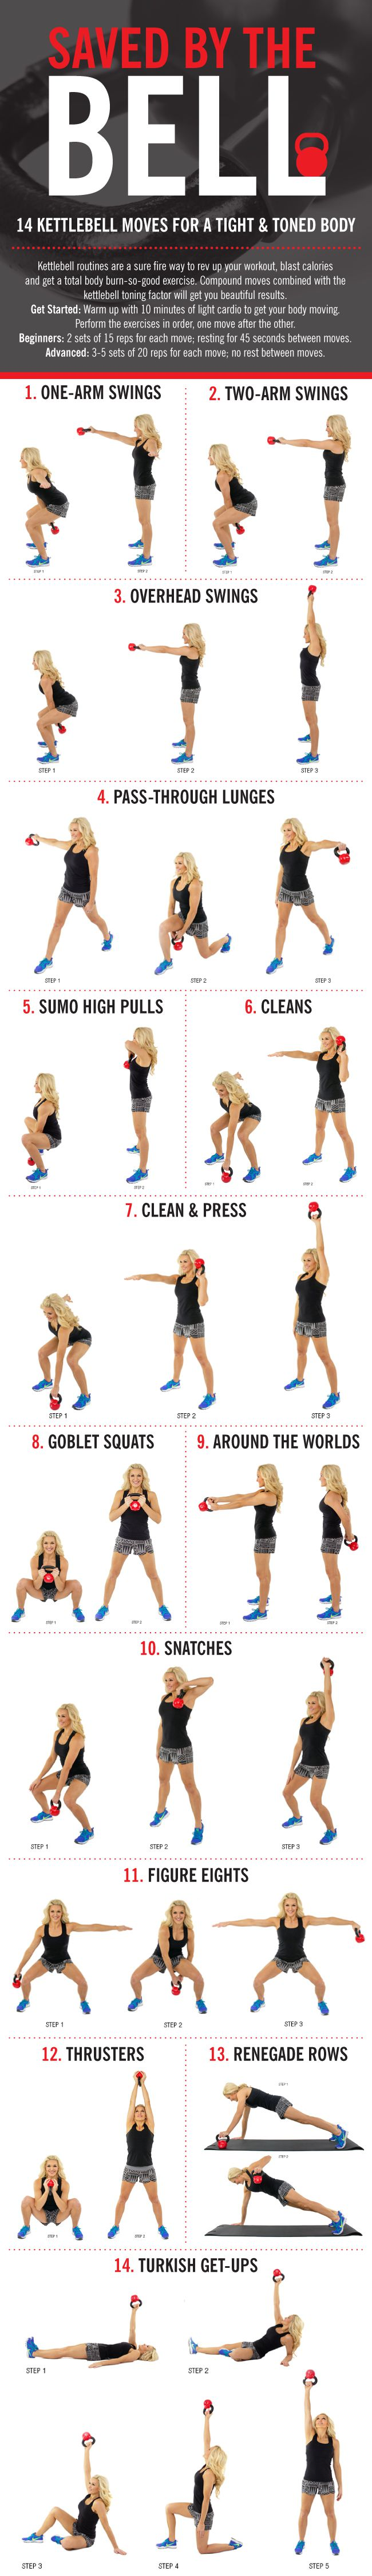 14 Kettlebell Moves Infographic